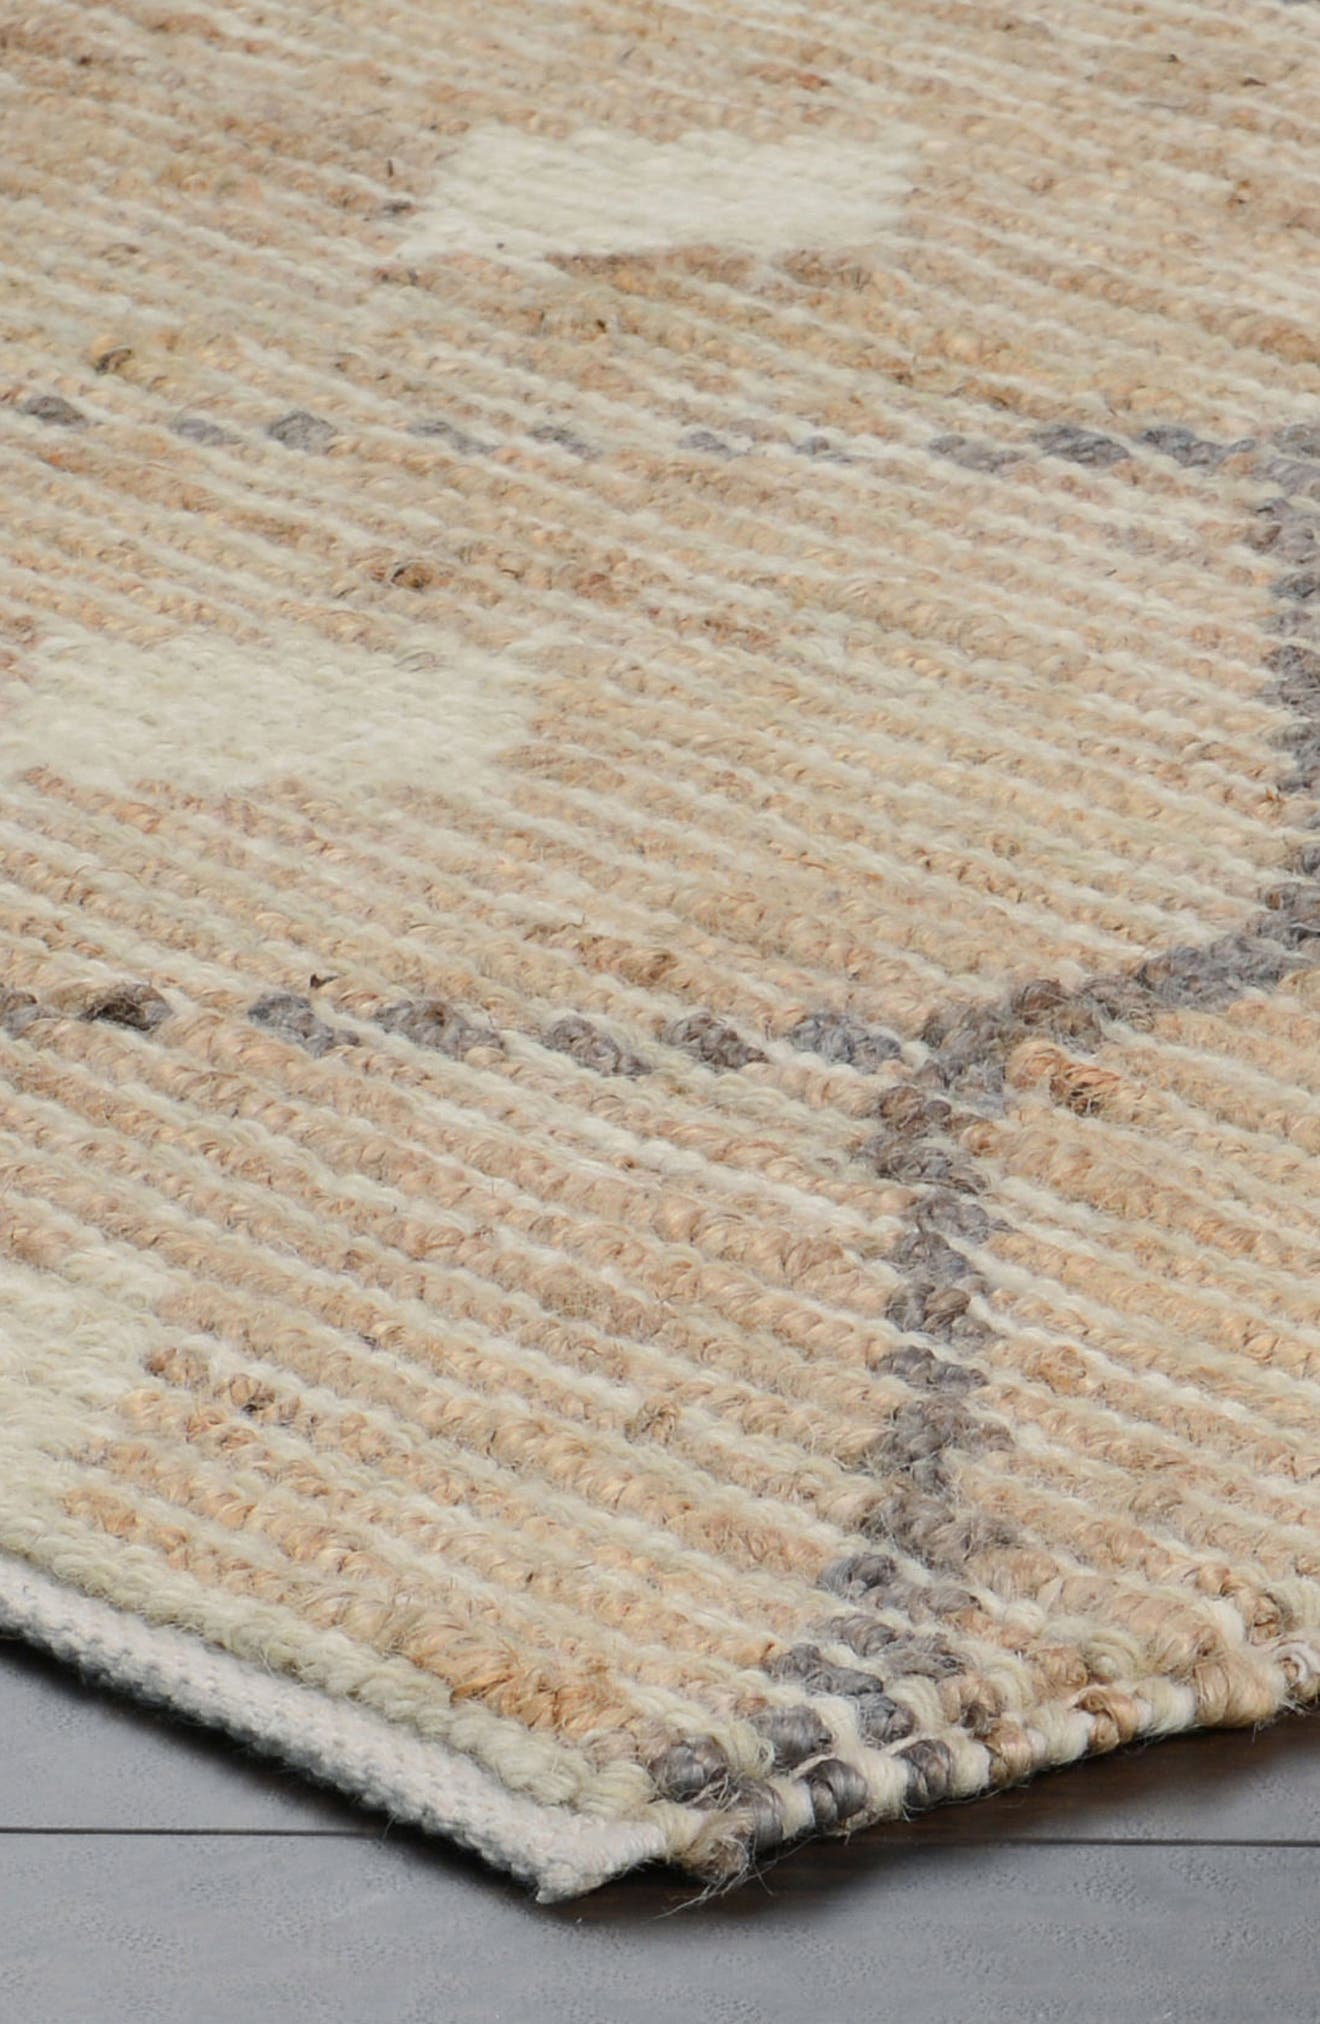 Rustica Handwoven Rug,                             Alternate thumbnail 2, color,                             250